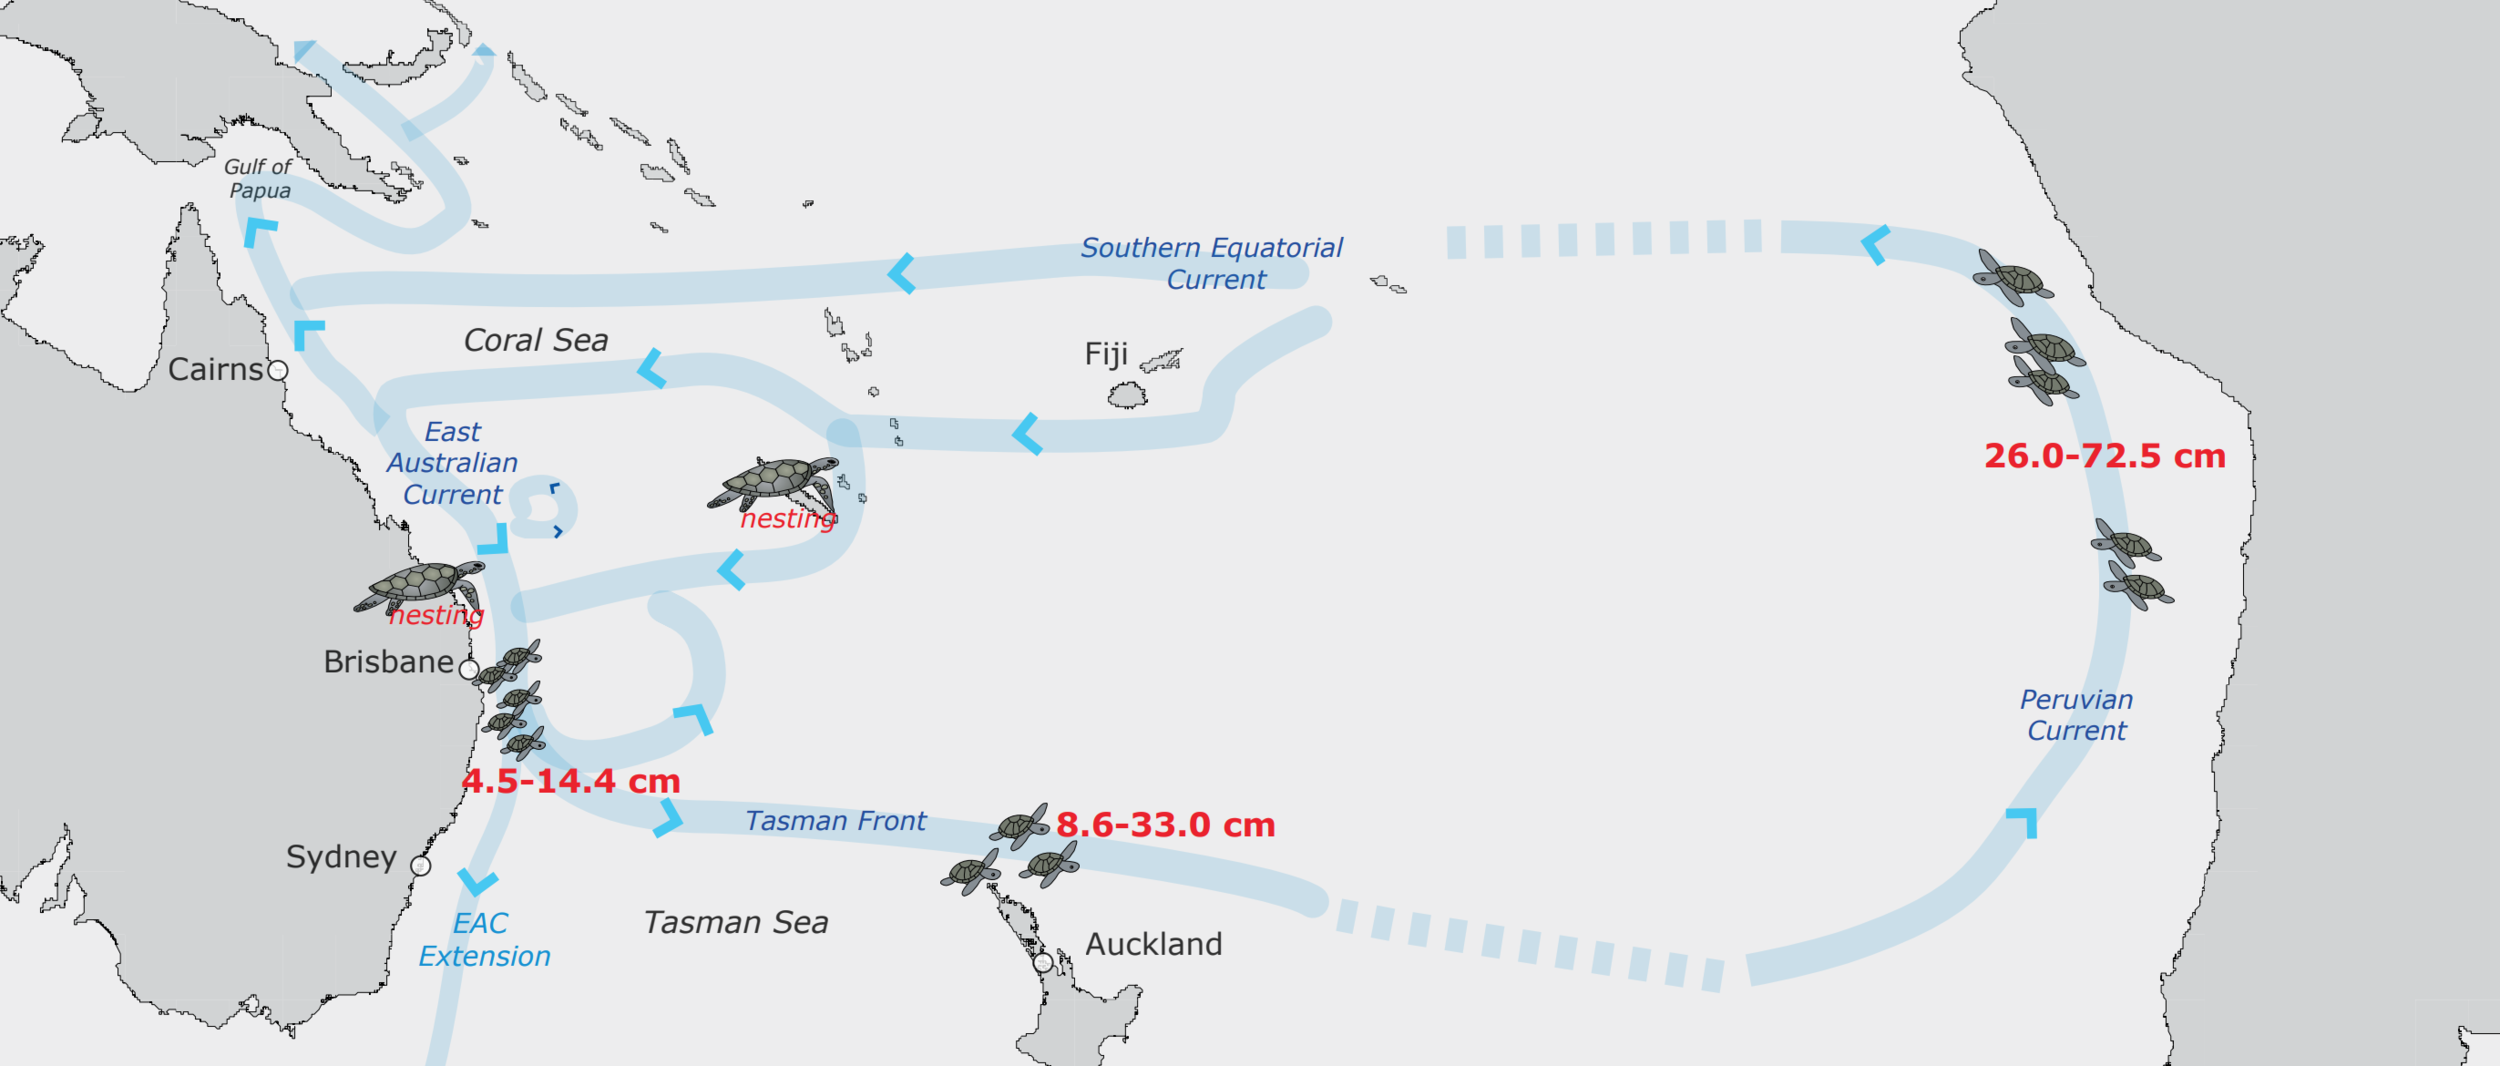 The puzzle of the loggerhead life cycle in the southern Pacific Ocean is solved by tracing the path of the currents. A recent genetics study showed that little loggerheads from Australia and New Caledonia, small juveniles in New Zealand, and larger juveniles in Peru belong to the same population, which is connected by major currents that link opposite sides of the southern Pacific Ocean. Blue arrows indicate currents, and red text indicates turtle body size. © MICHELLE BOYLE